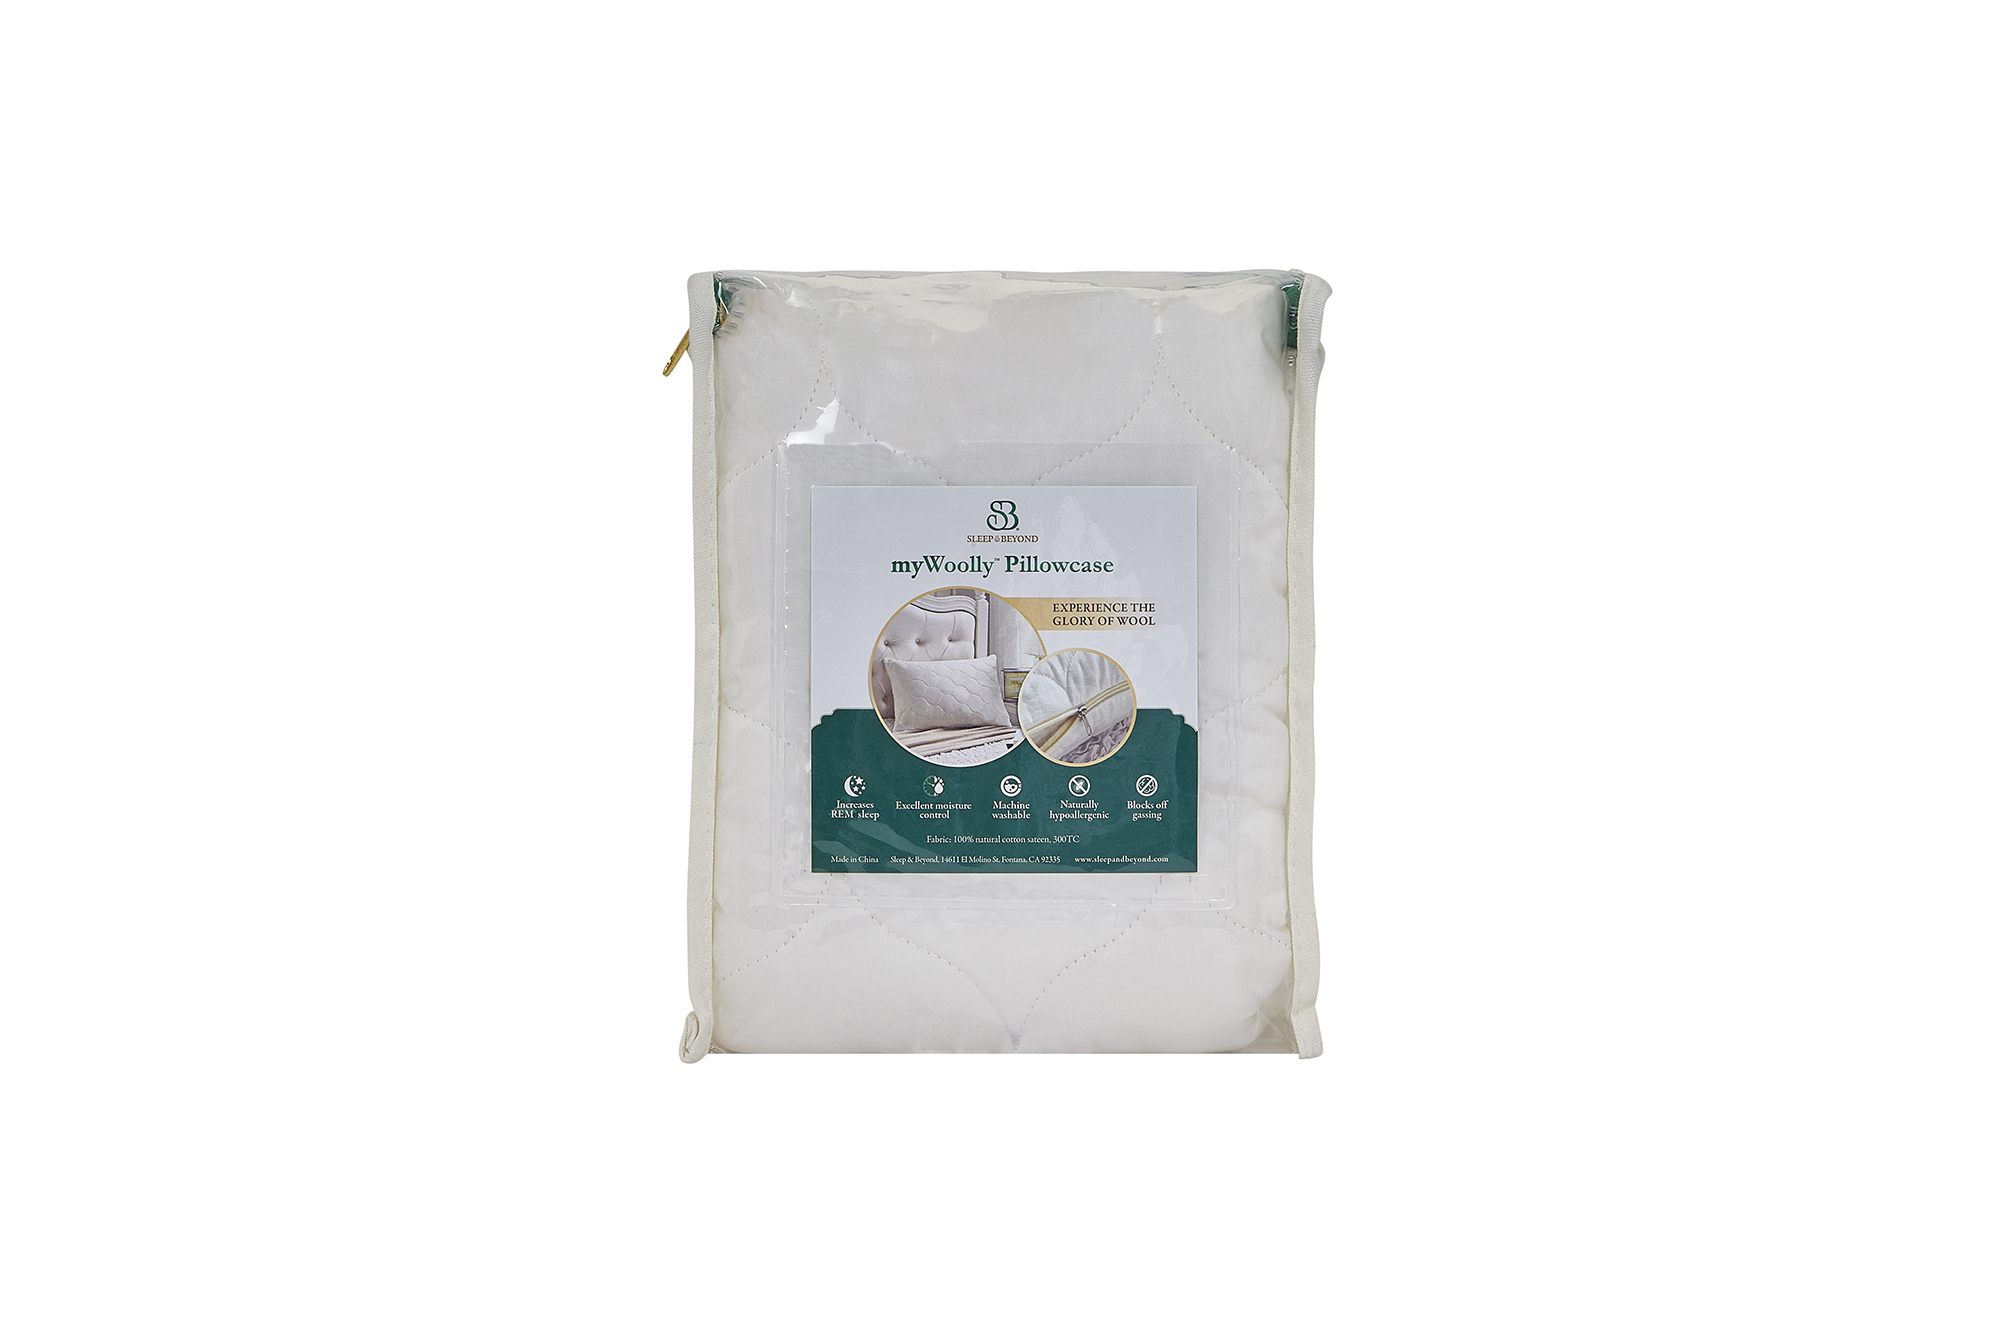 myWoolly Pillow Case Packaging Back